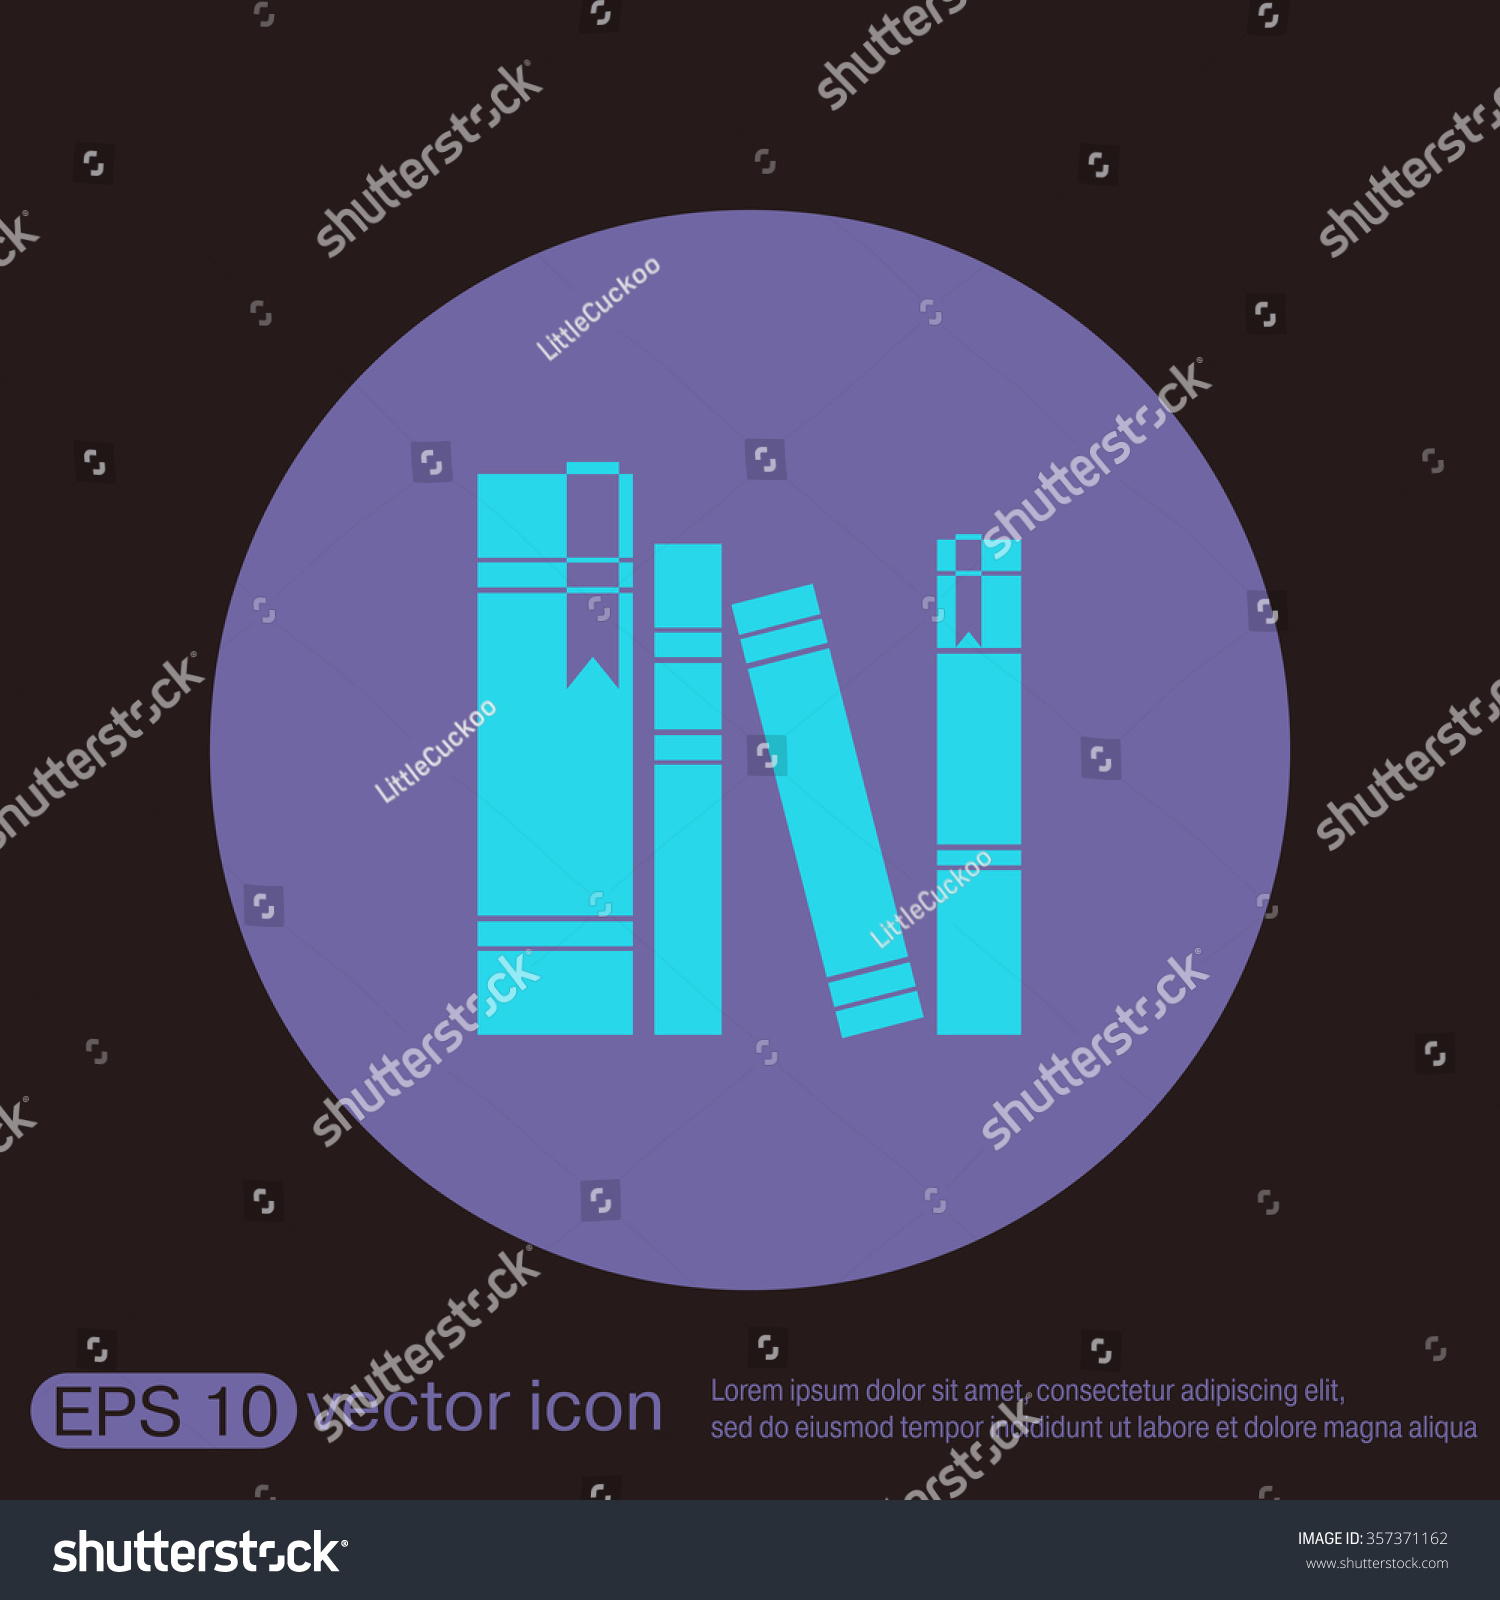 royalty book spine spines of books icon 357371162 stock book spine spines of books icon symbol of a science and literature stock vector